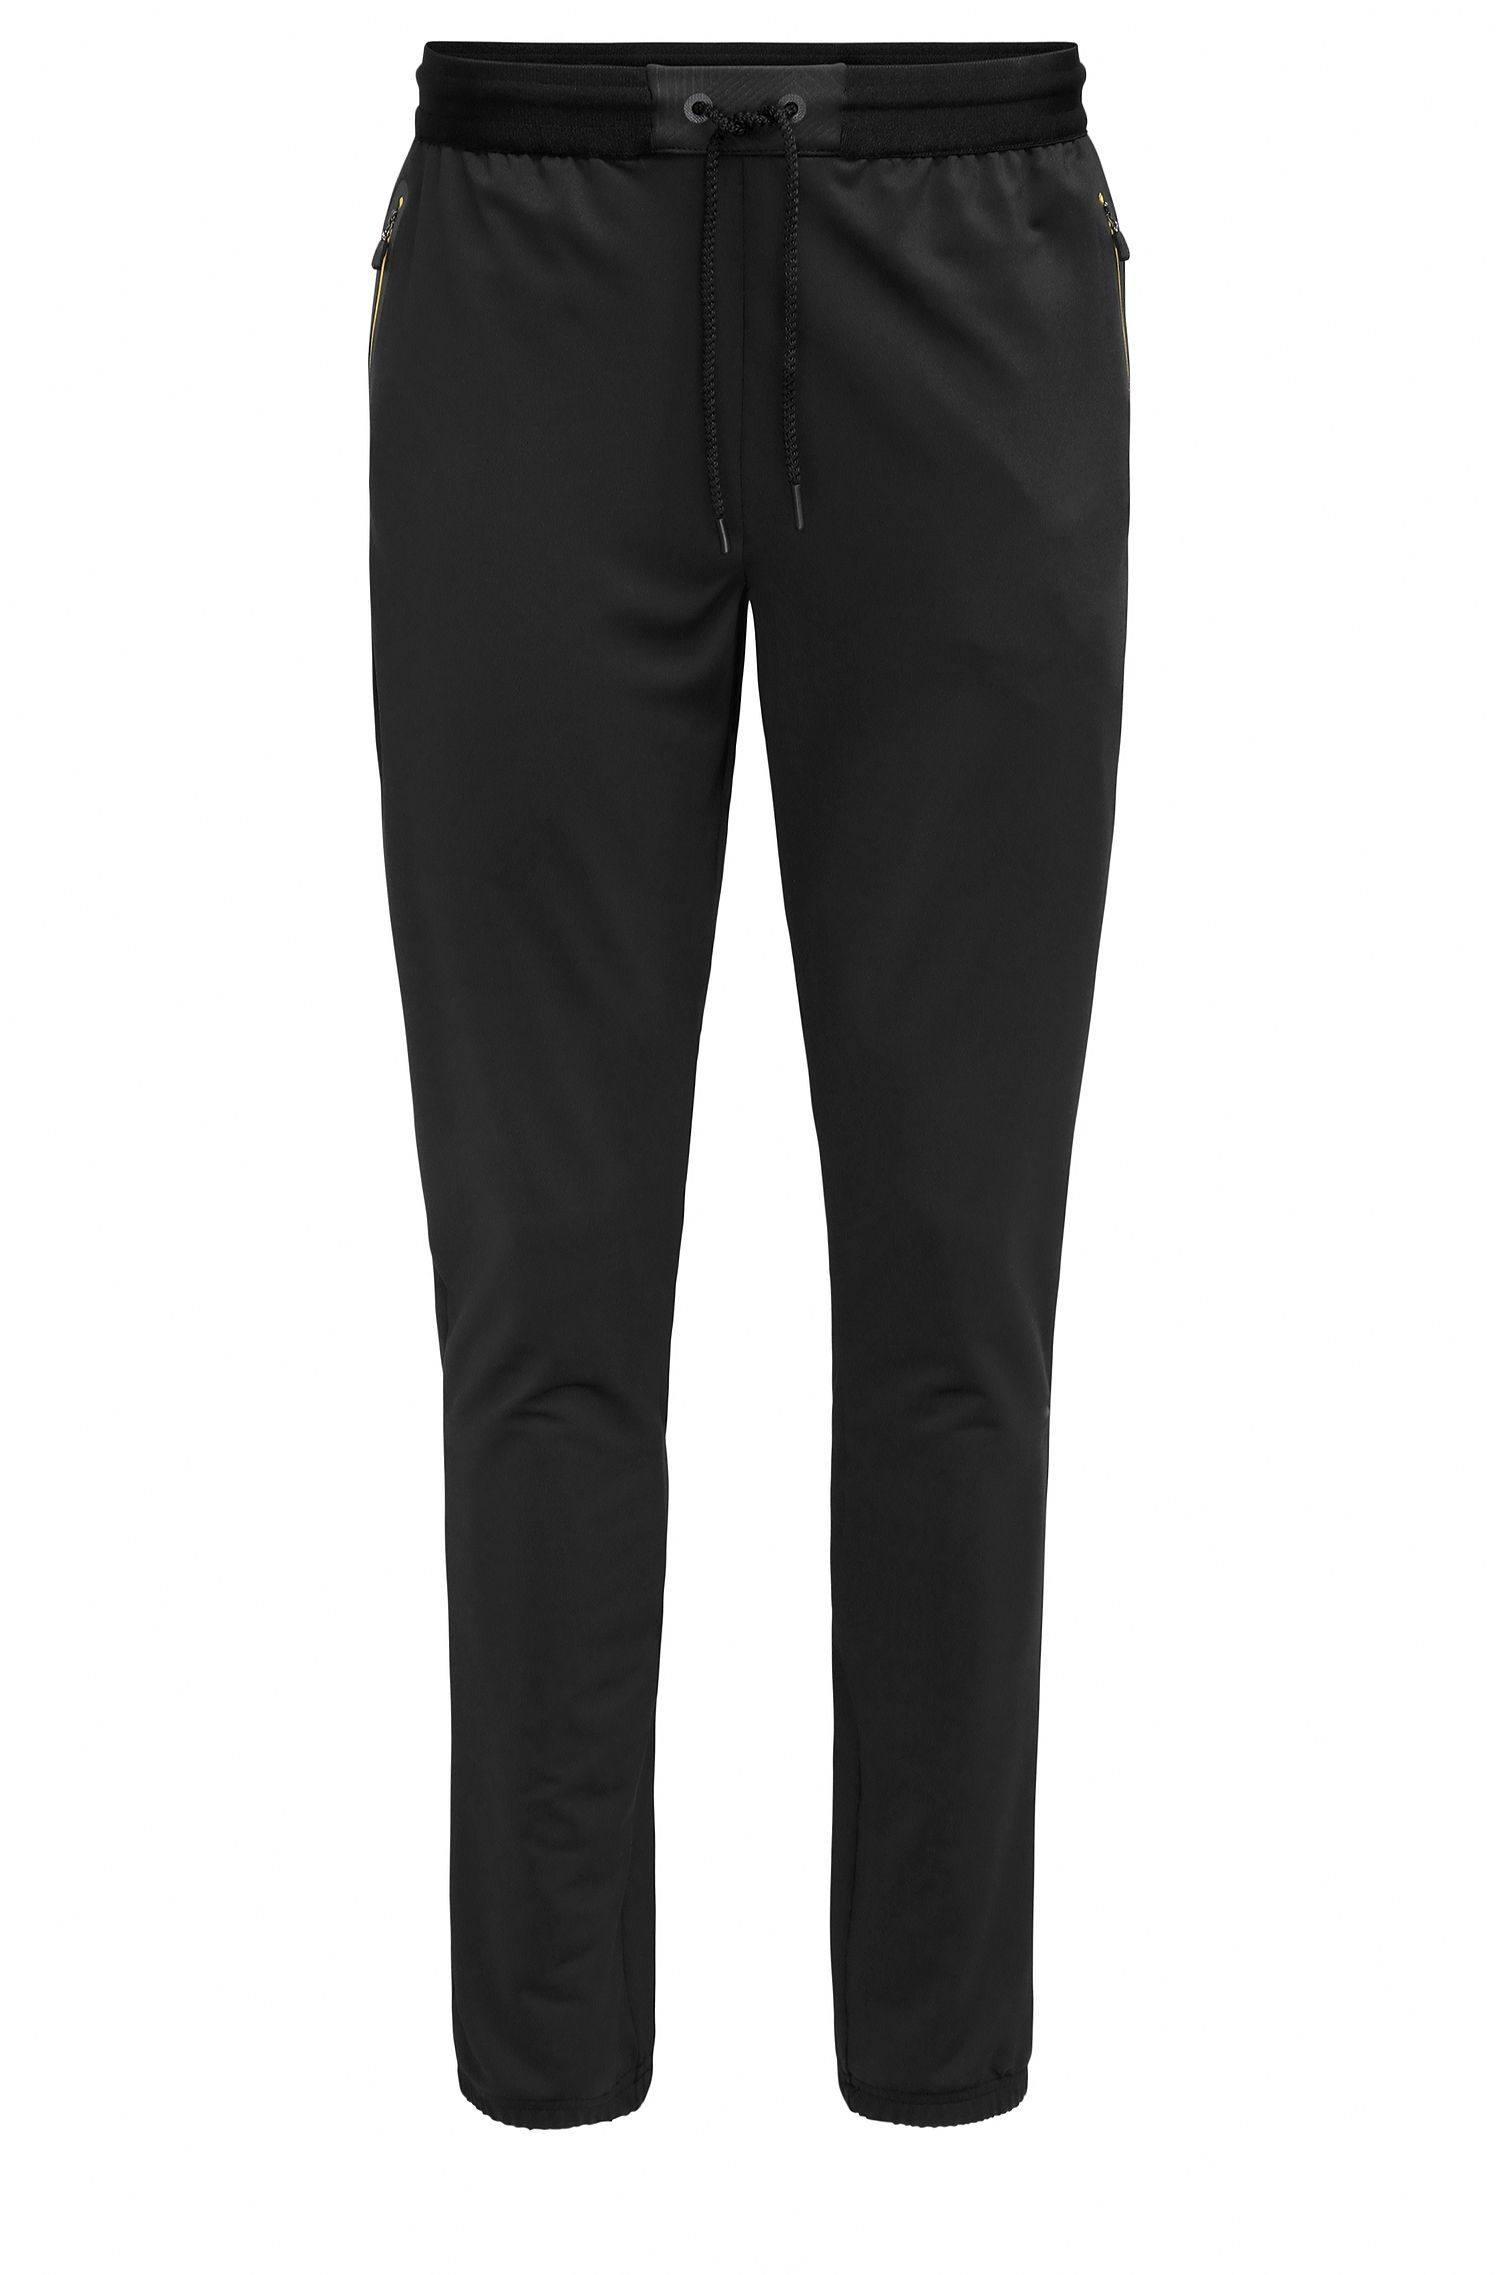 Pantalon Slim Fit en jersey de tissu technique